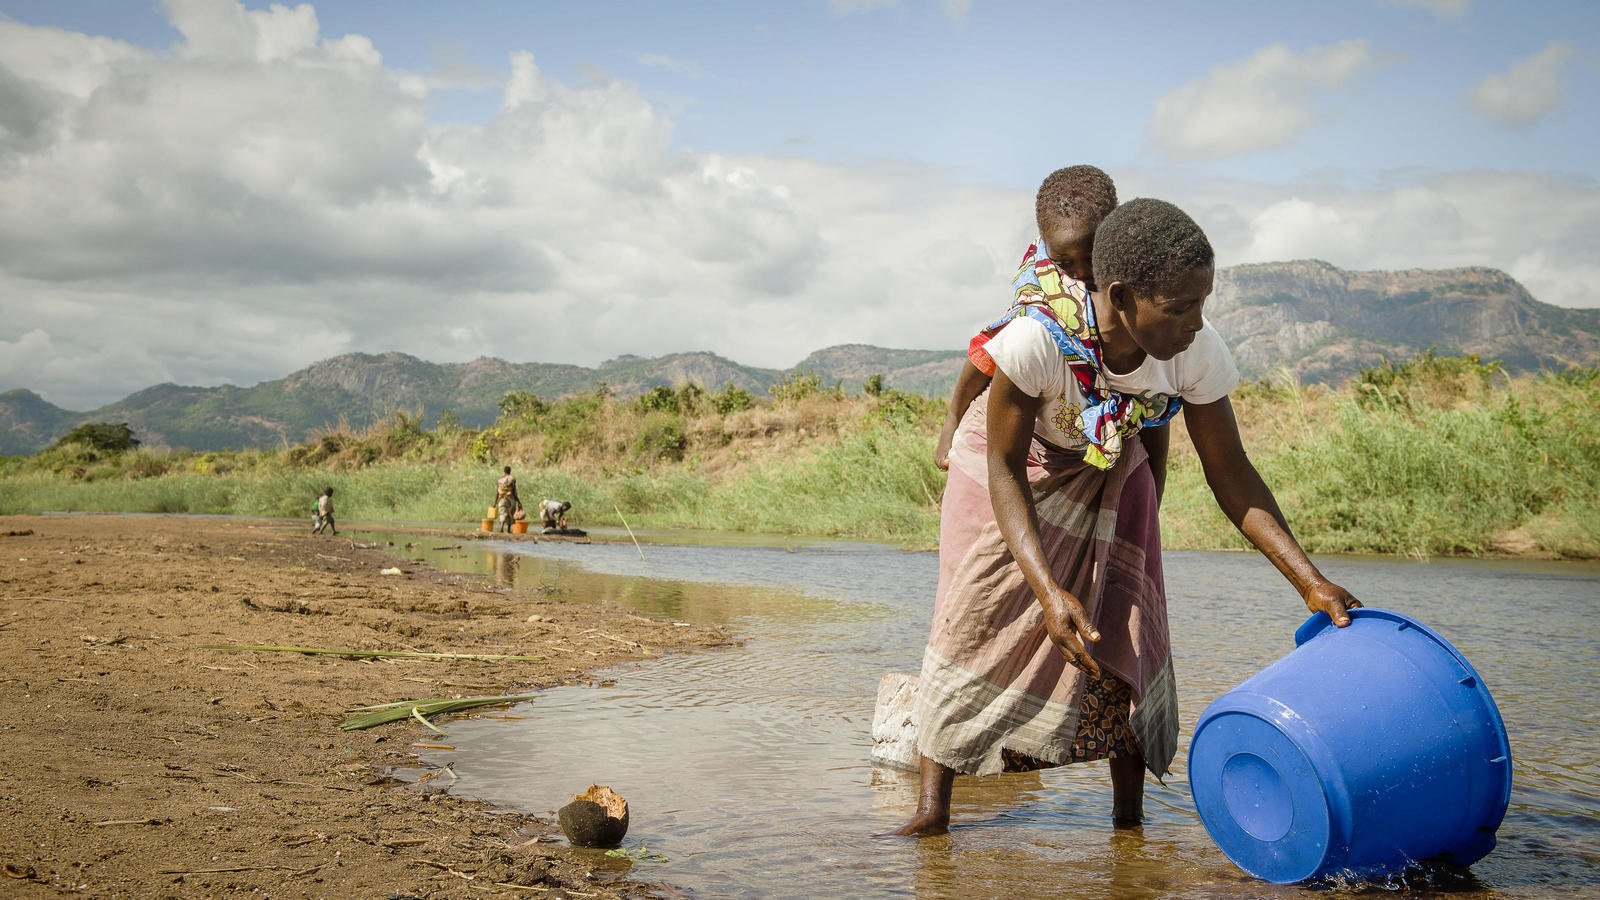 Helene carries her baby Agostinho on her back as she gathers water from the river near her village in Mozambique